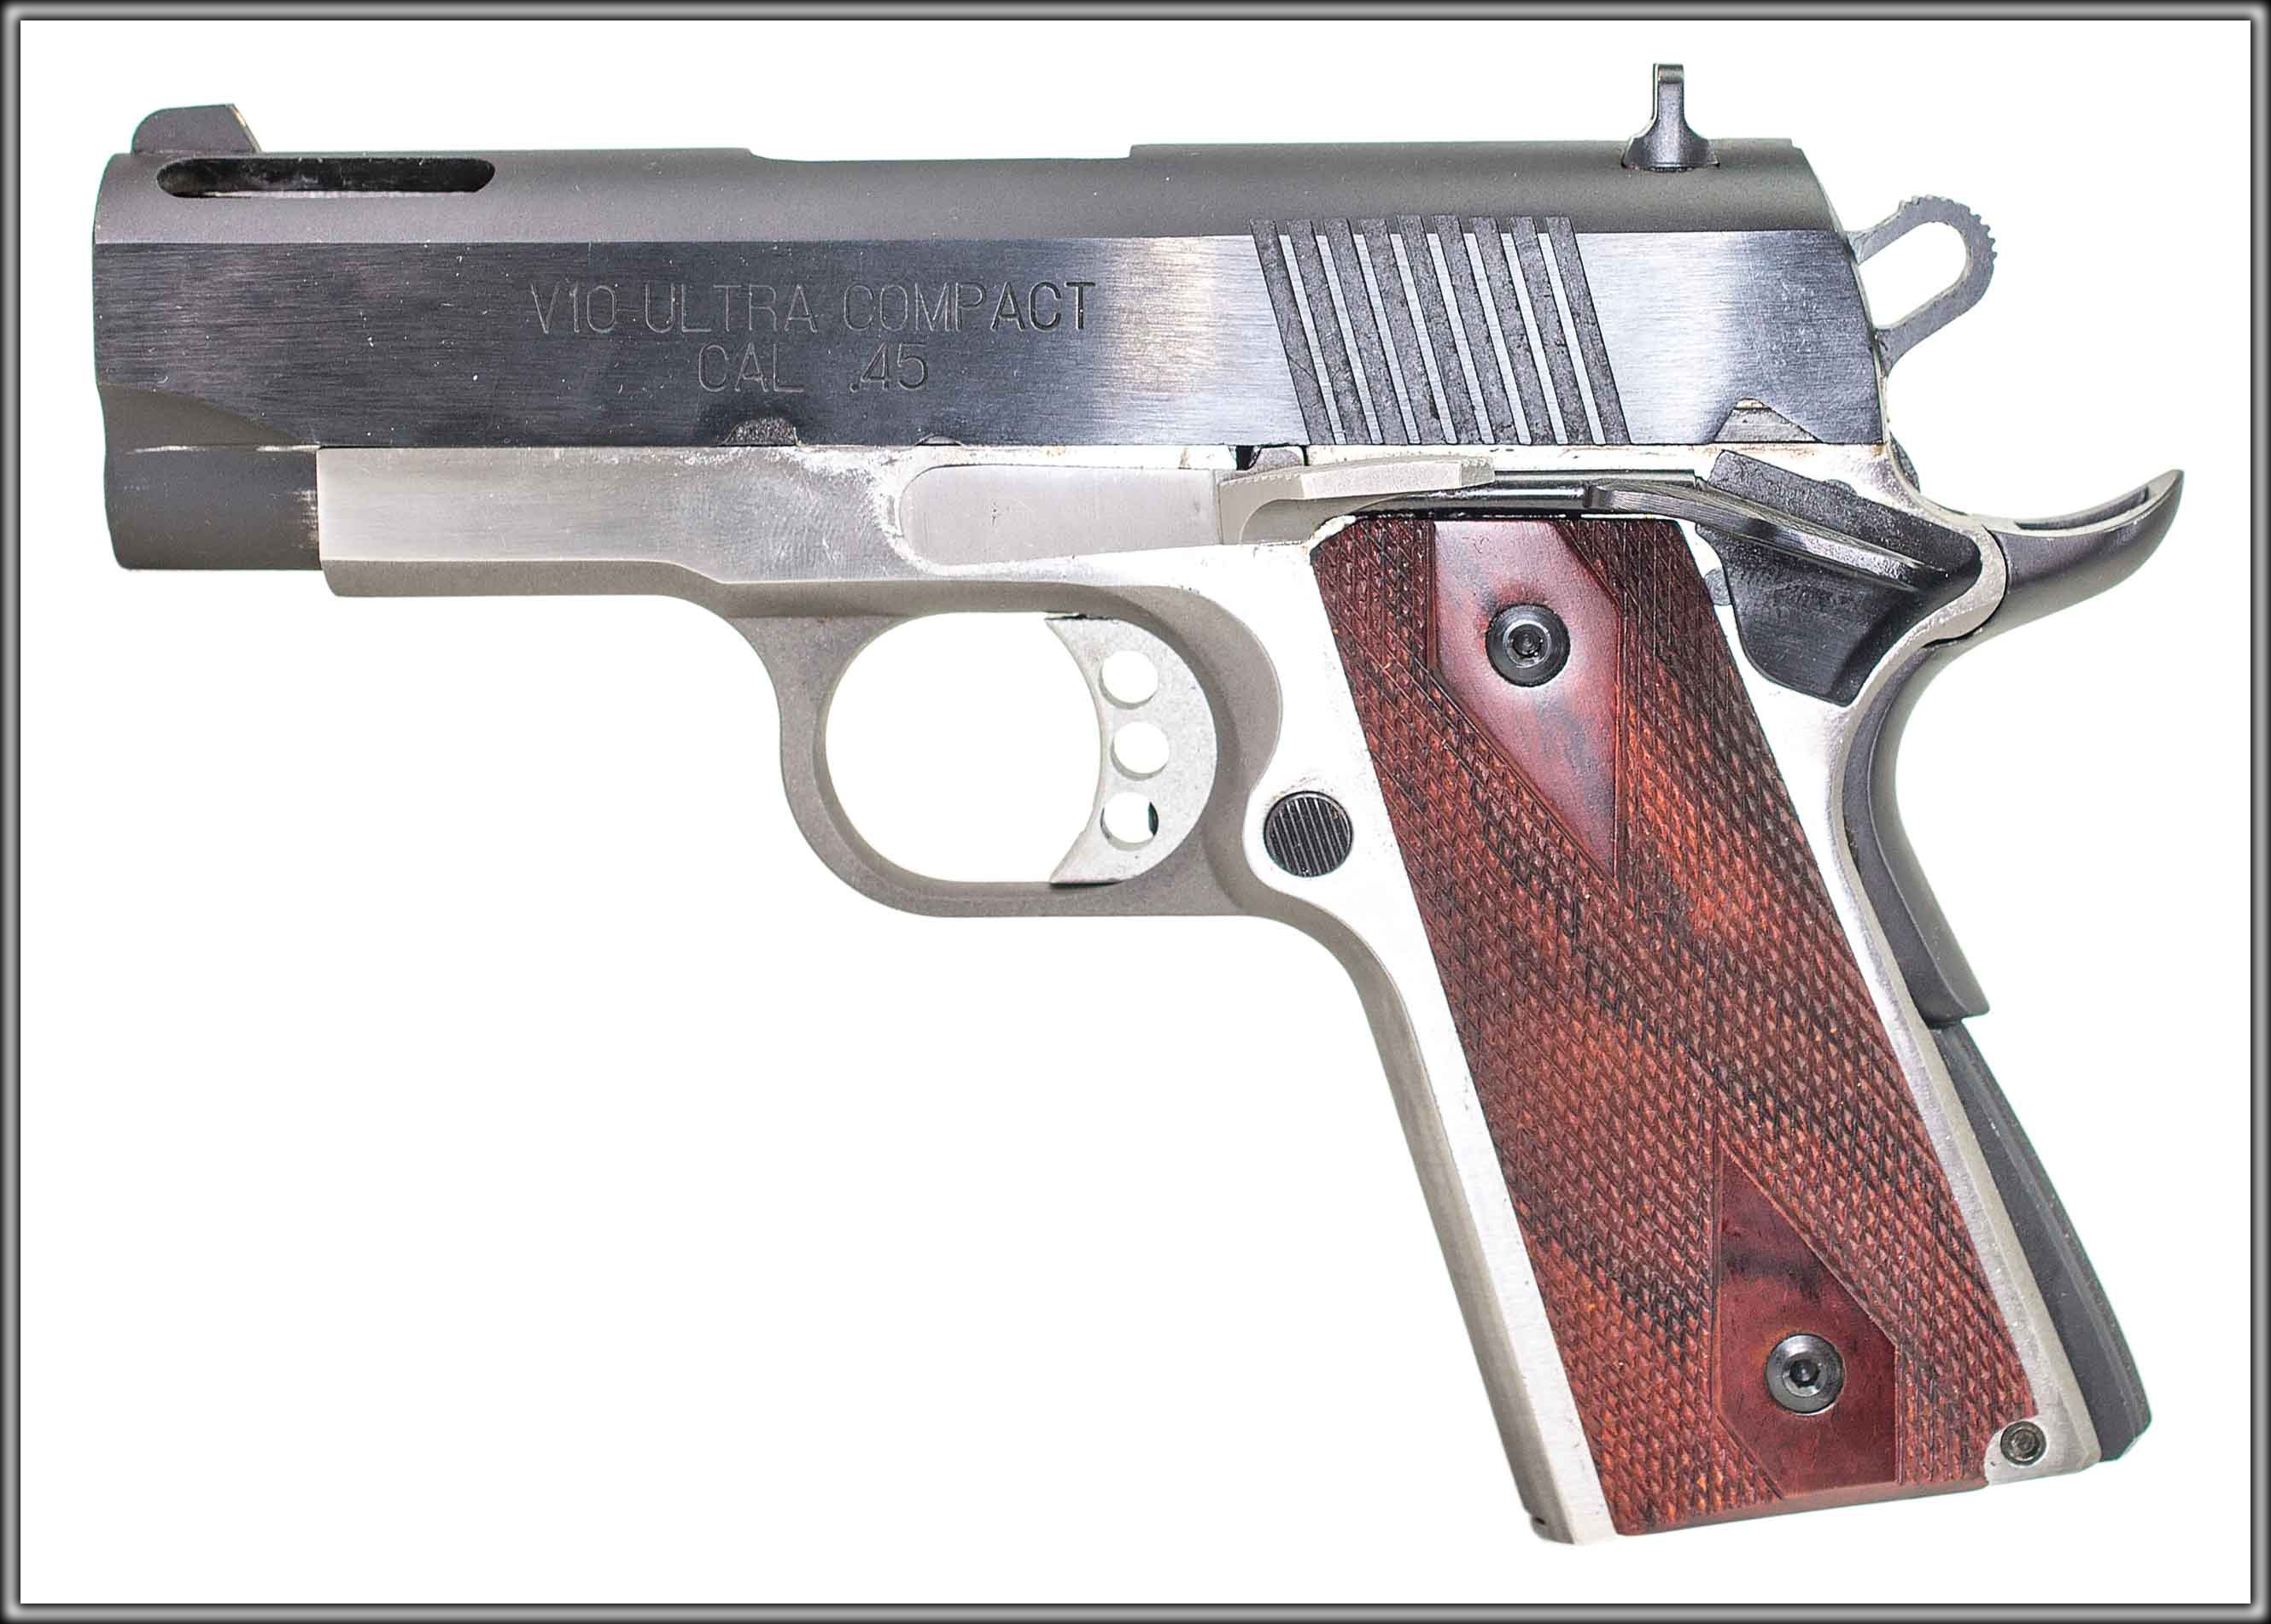 SPRINGFIELD V10 ULTRA COMPACT [45 ACP] (Auction ID: 14651166, End